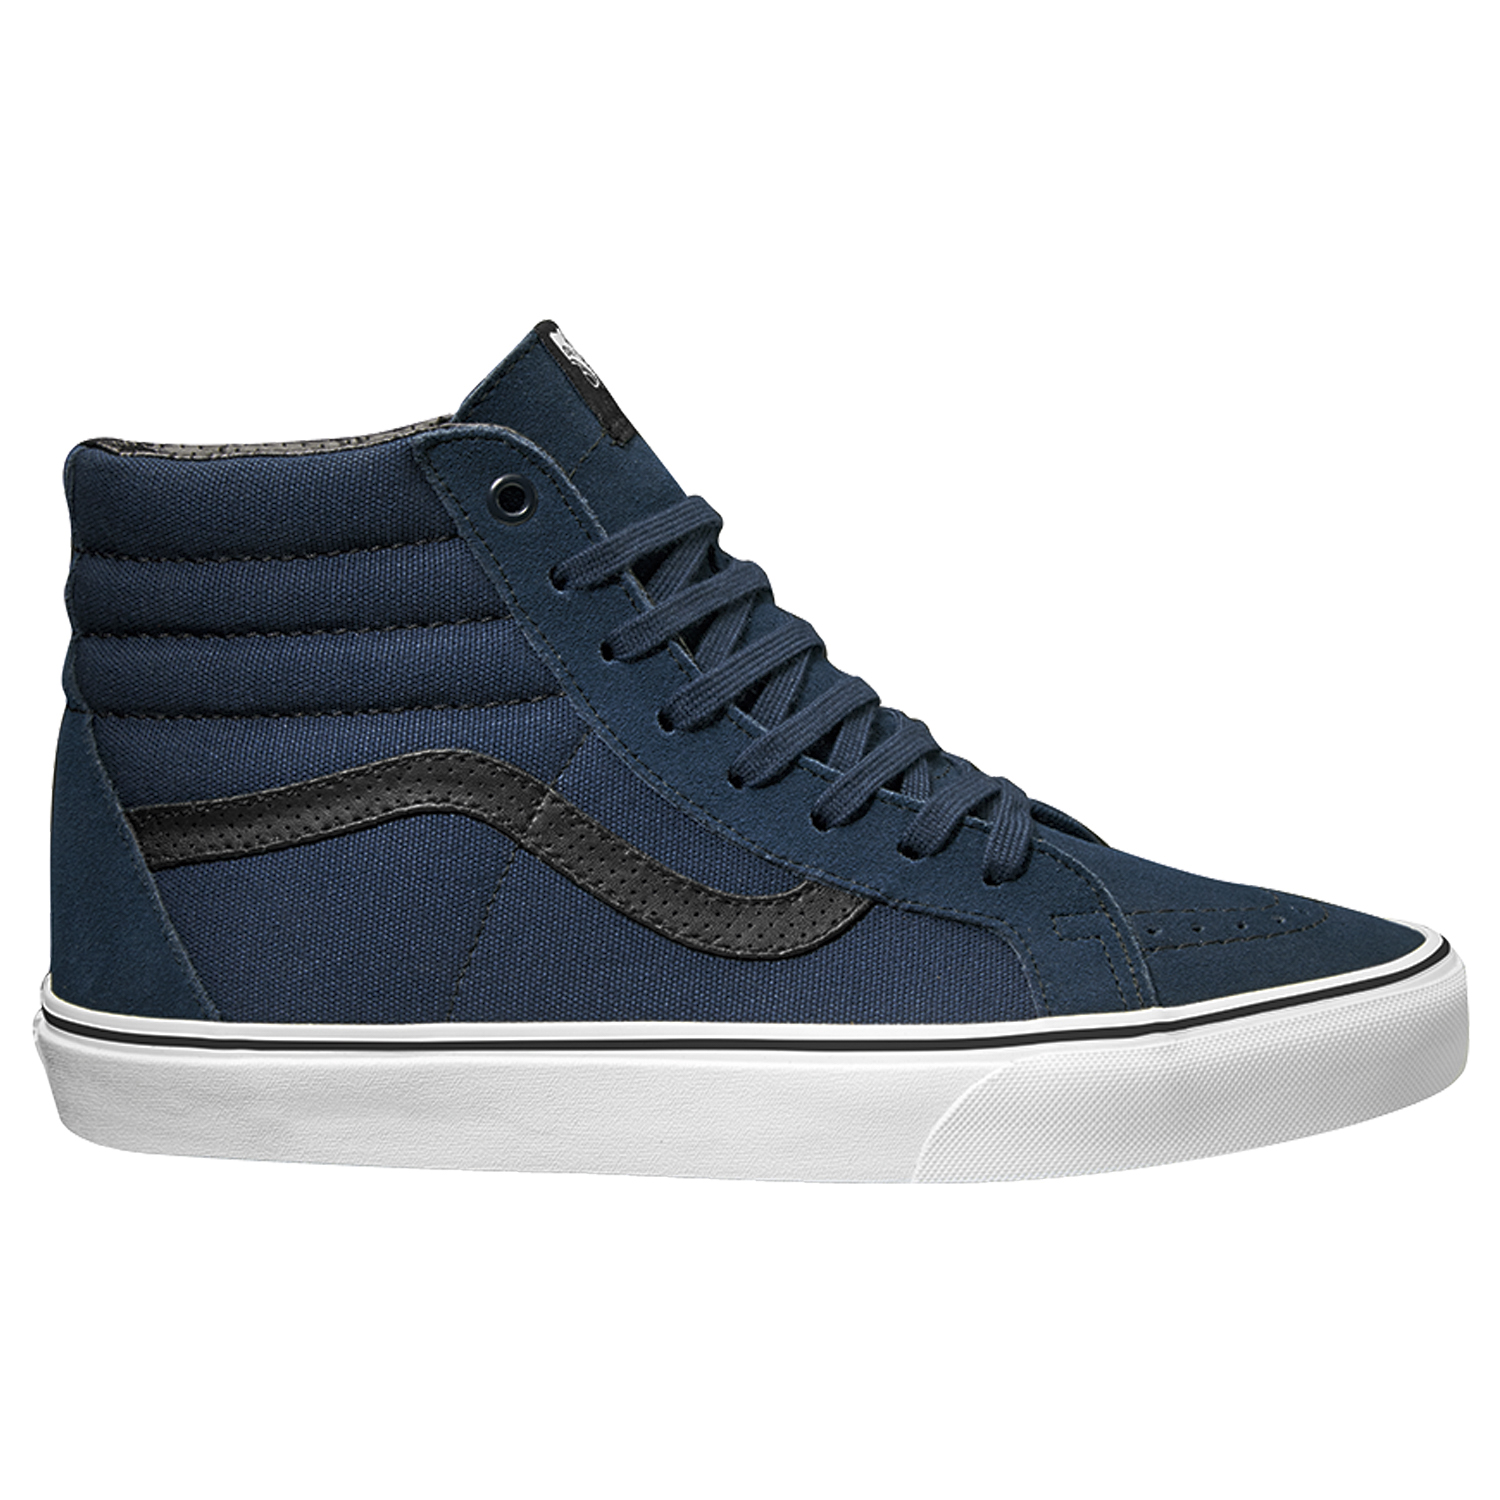 vans-sk8-hi-reis-cp-dress-blues-black-159-90